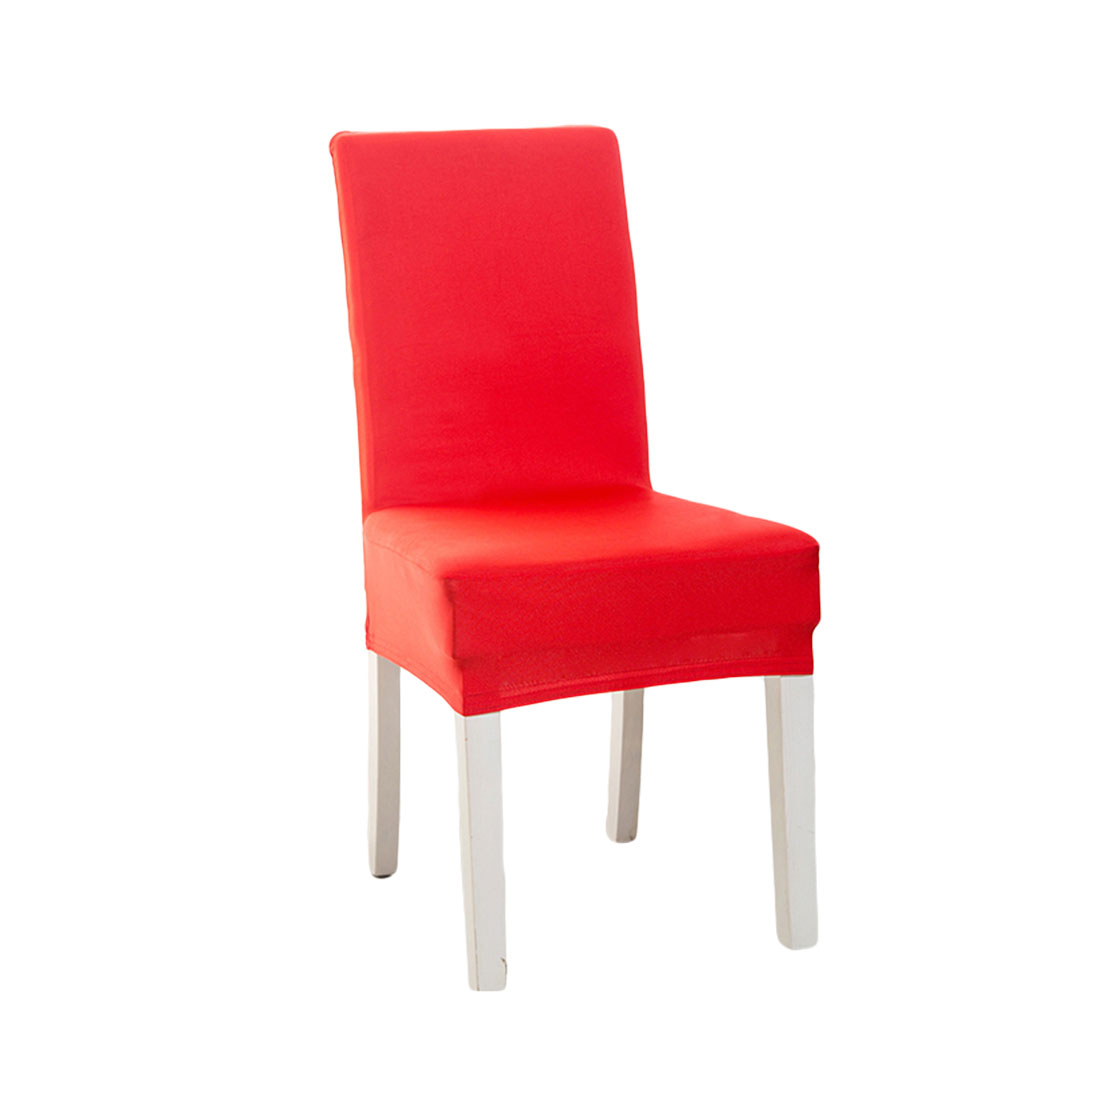 Dining Room Chair Protective Covers: Hot Dining Chair Covers Spandex Strech Dining Room Cadeira